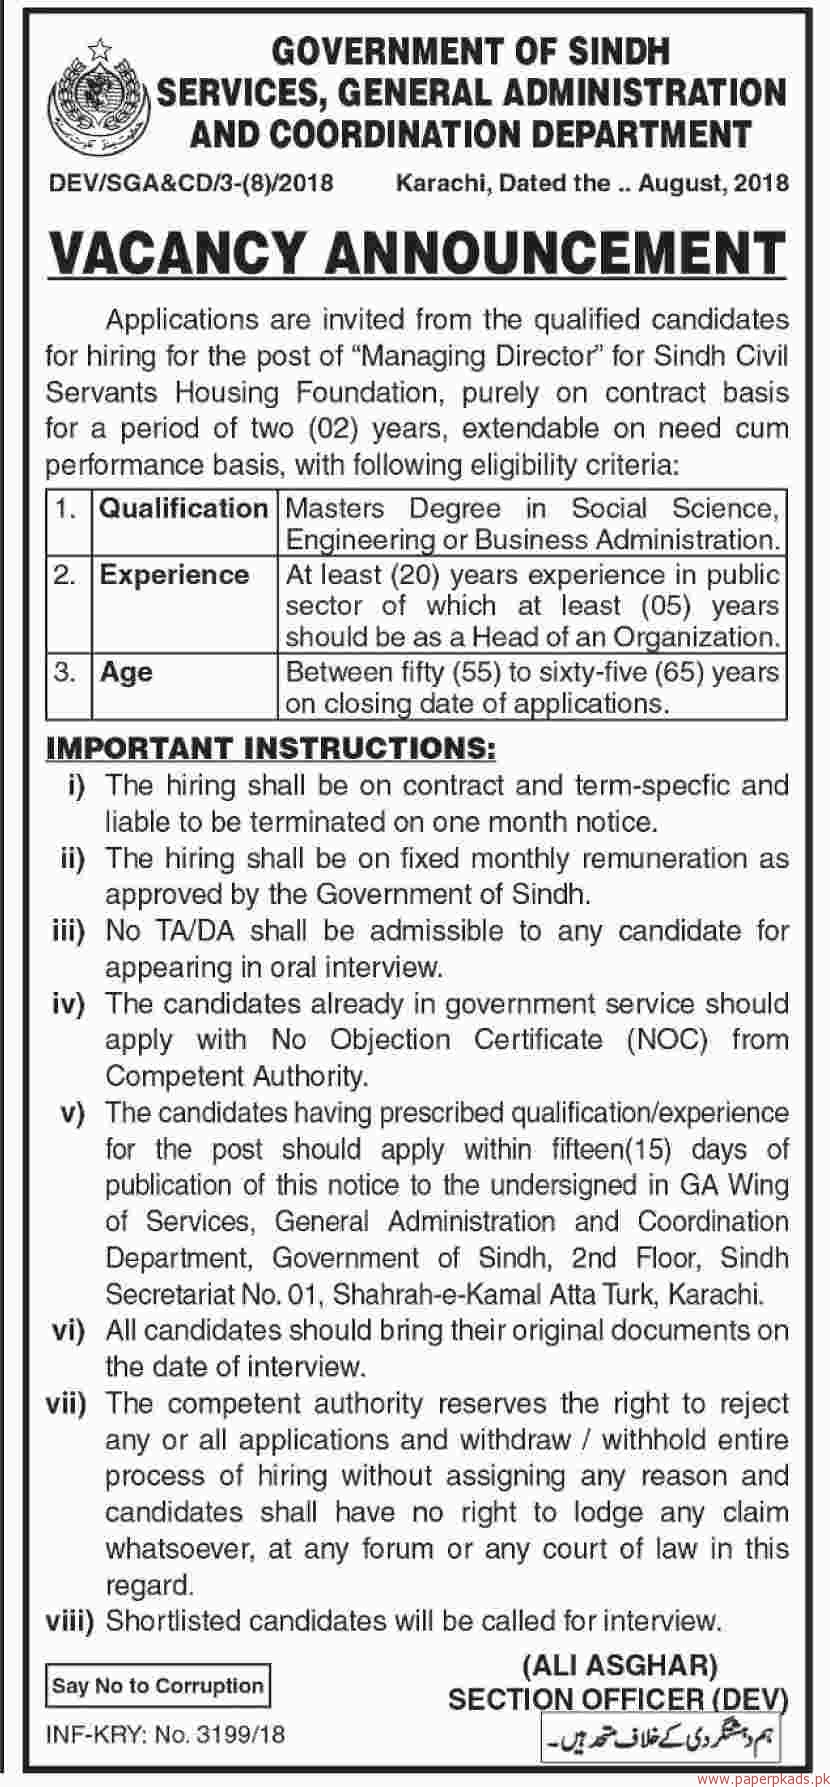 Governemnt of Sindh - Services General Administration and Coordination Department Jobs 2018 Latest